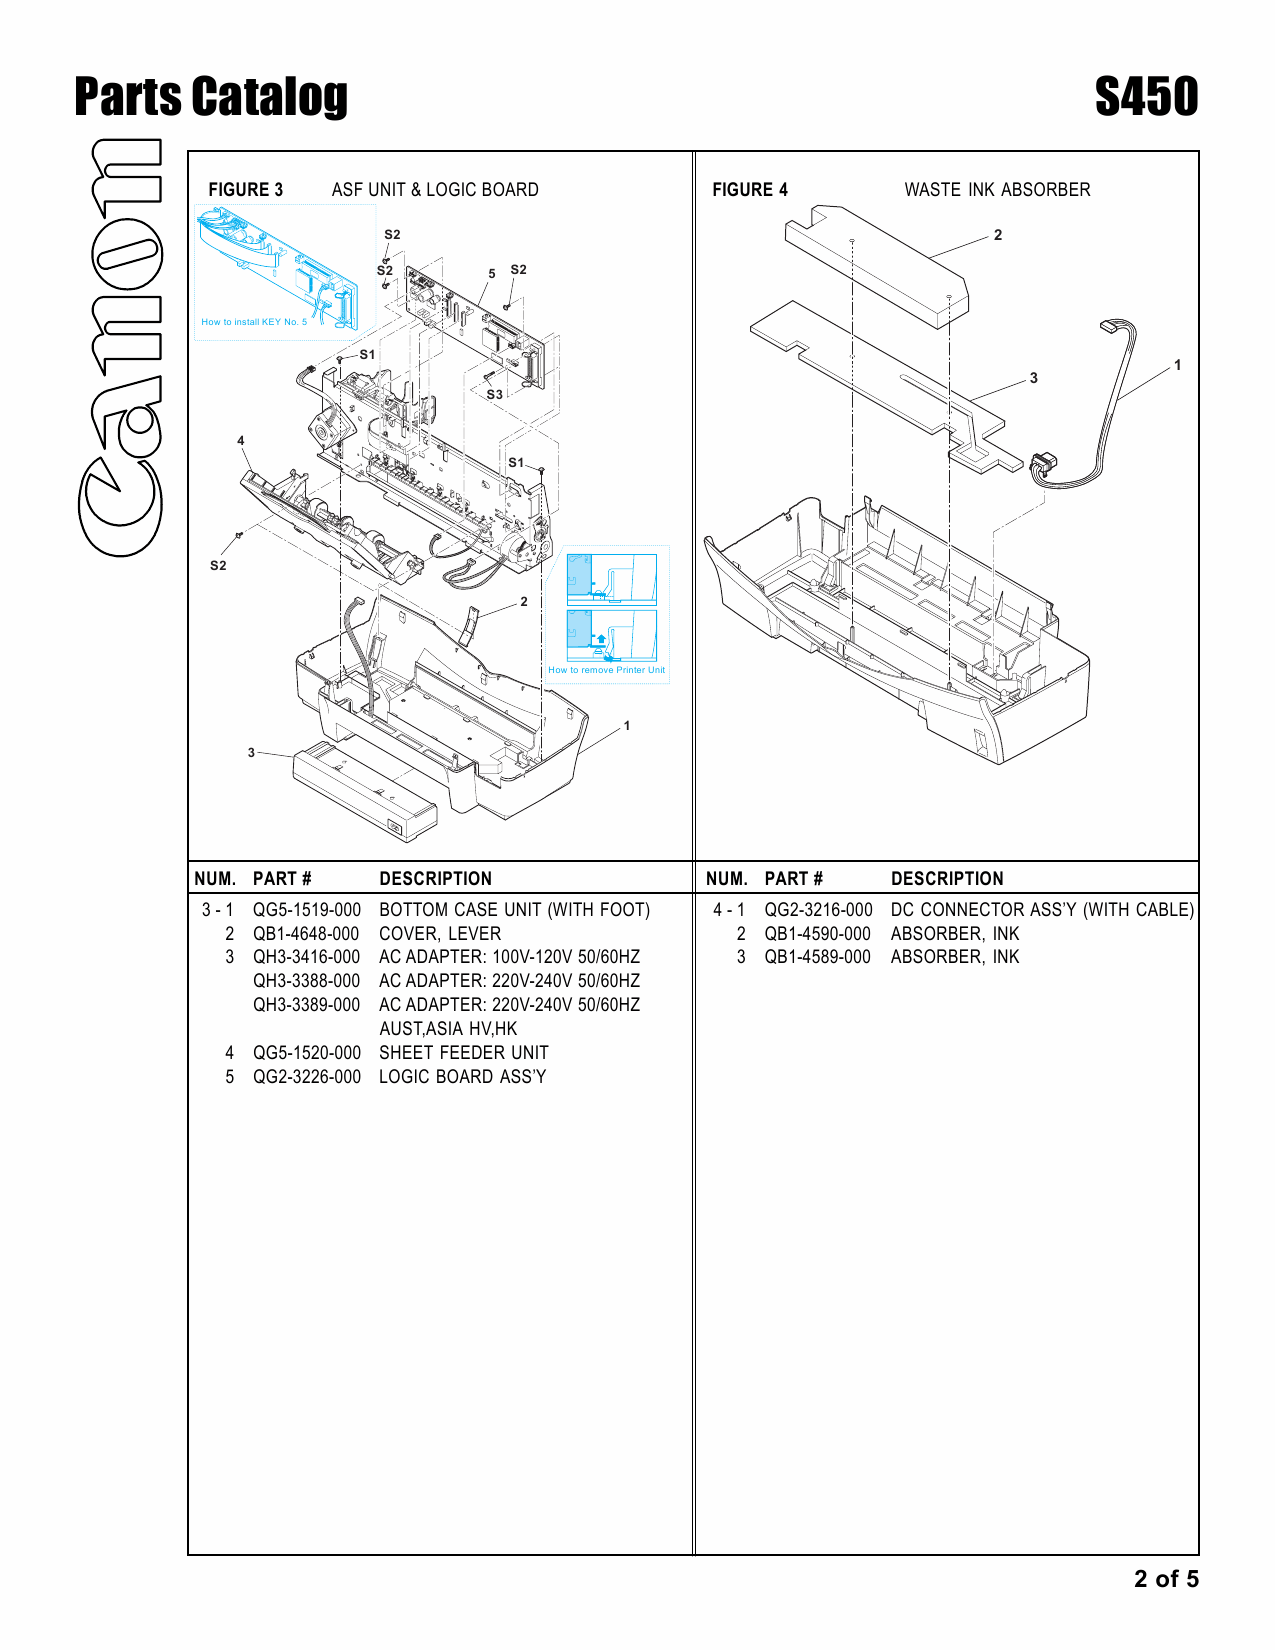 Canon PIXUS S450 Parts Catalog Manual-3